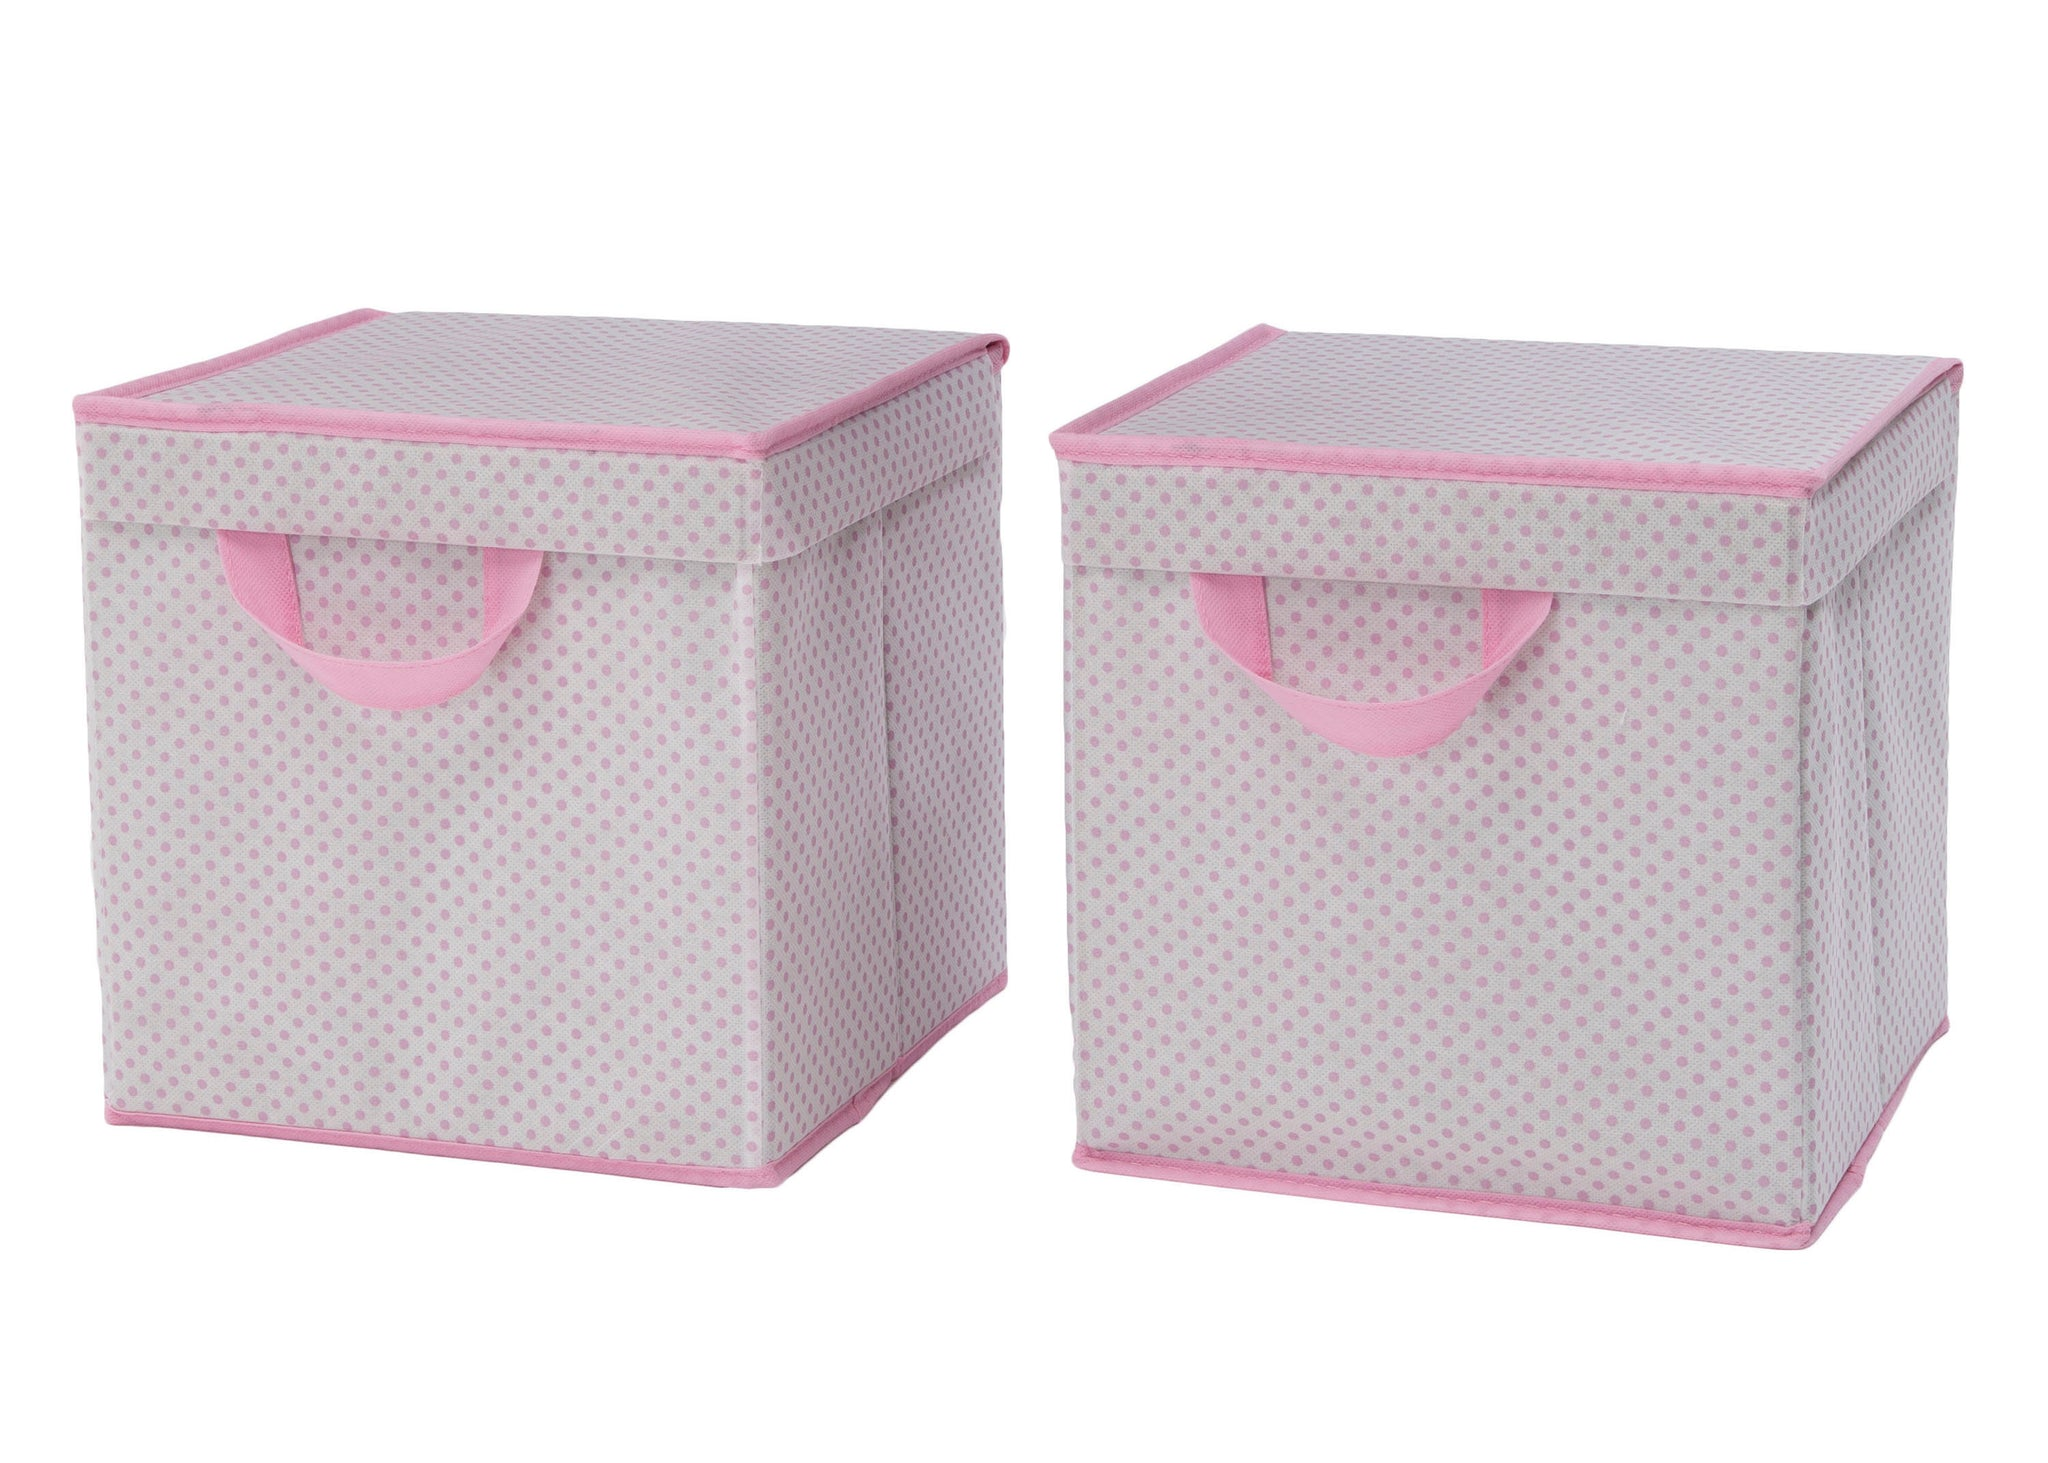 Delta Children Pink Polka Dots (693) 2-Pack Lidded Storage Bins (SS2165), Hangtag, f2f